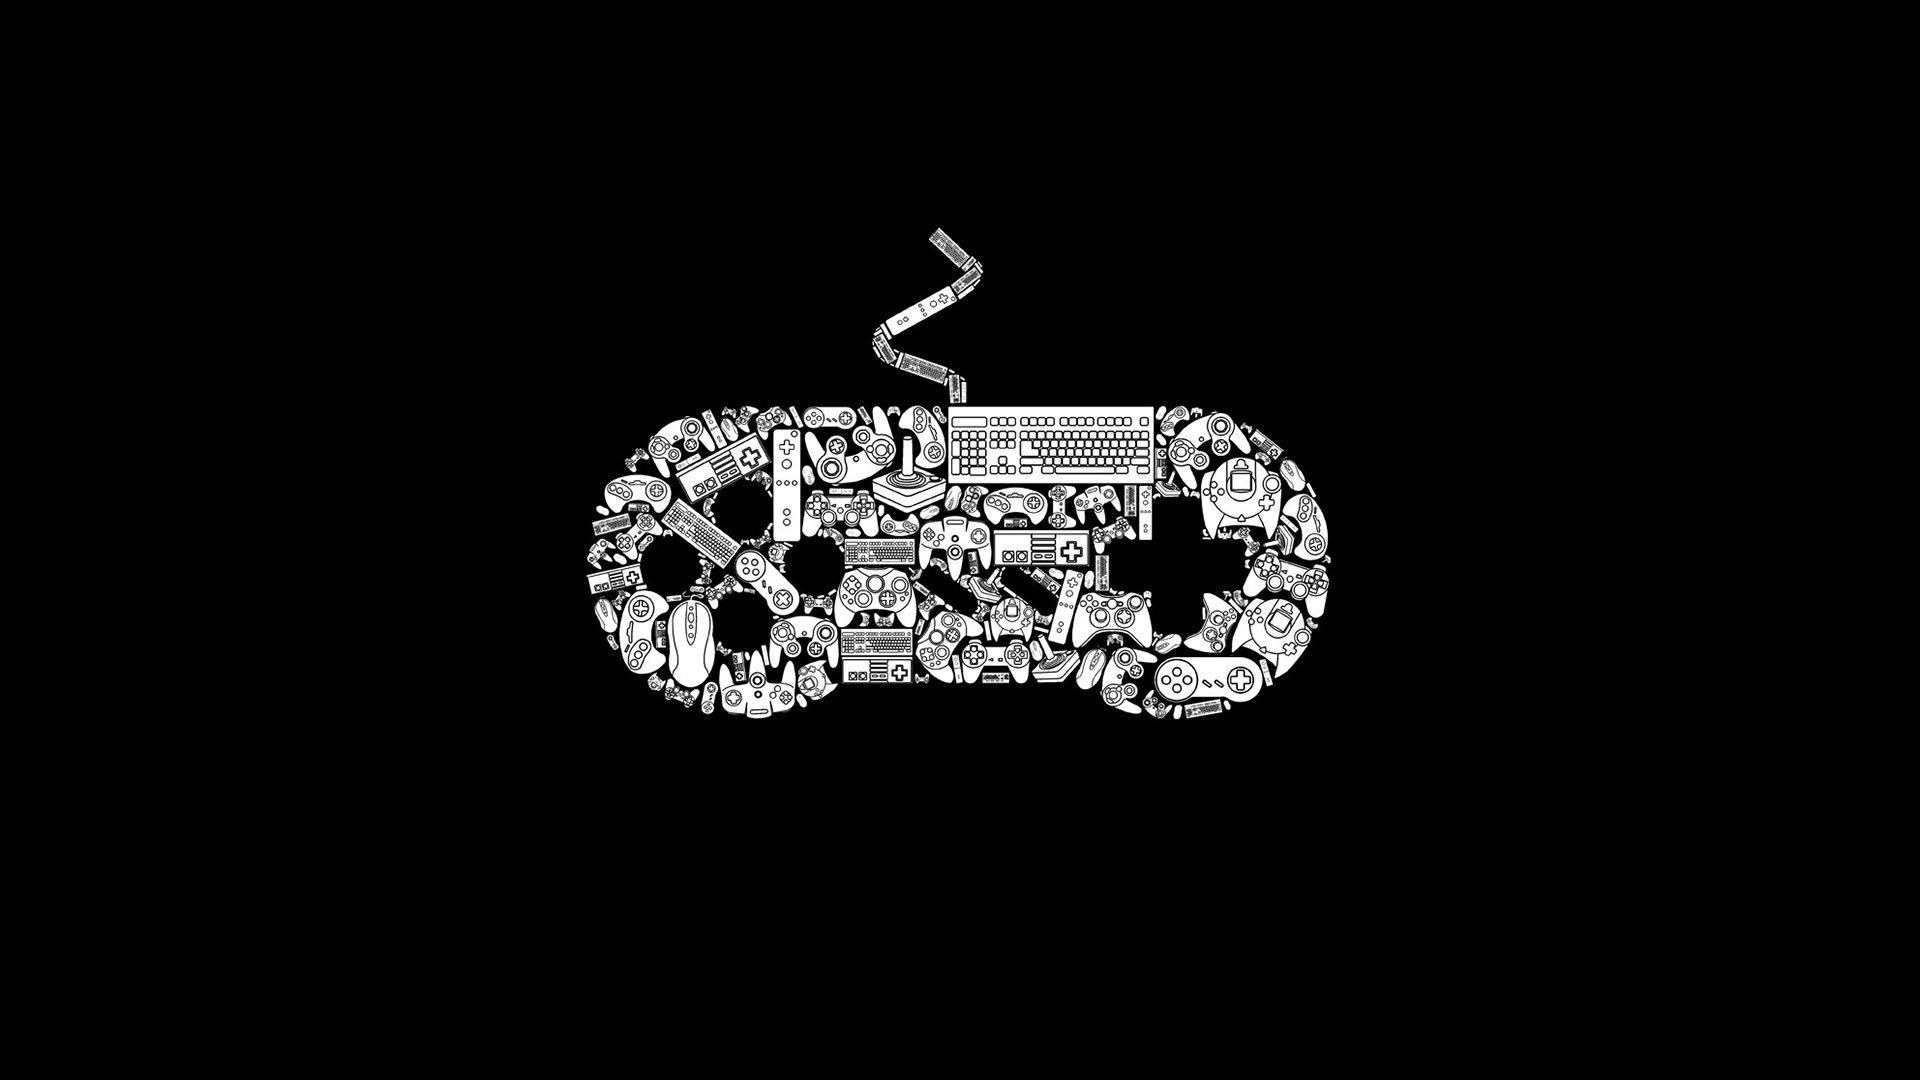 Gamer Thug Controller Hd Wallpapers